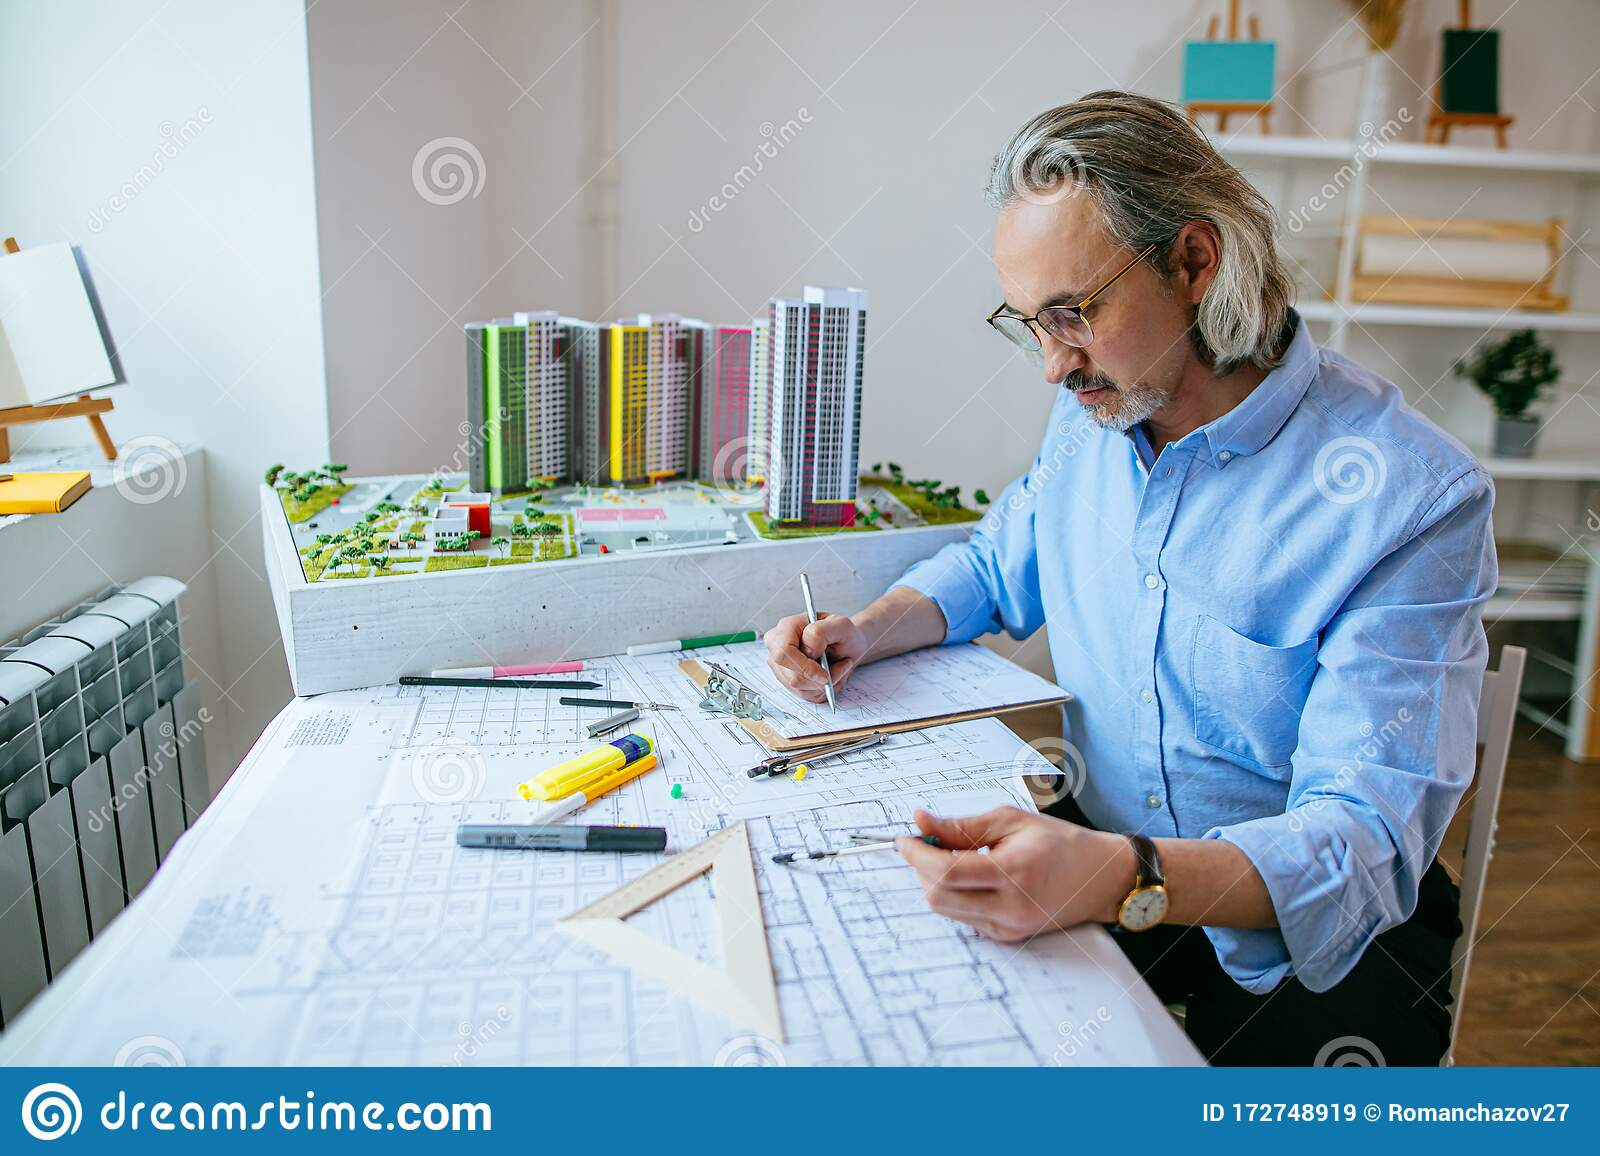 https://thumbs.dreamstime.com/z/senior-successful-architect-engineer-working-office-caucasian-formal-wear-work-using-drawings-schemes-stationery-172748919.jpg